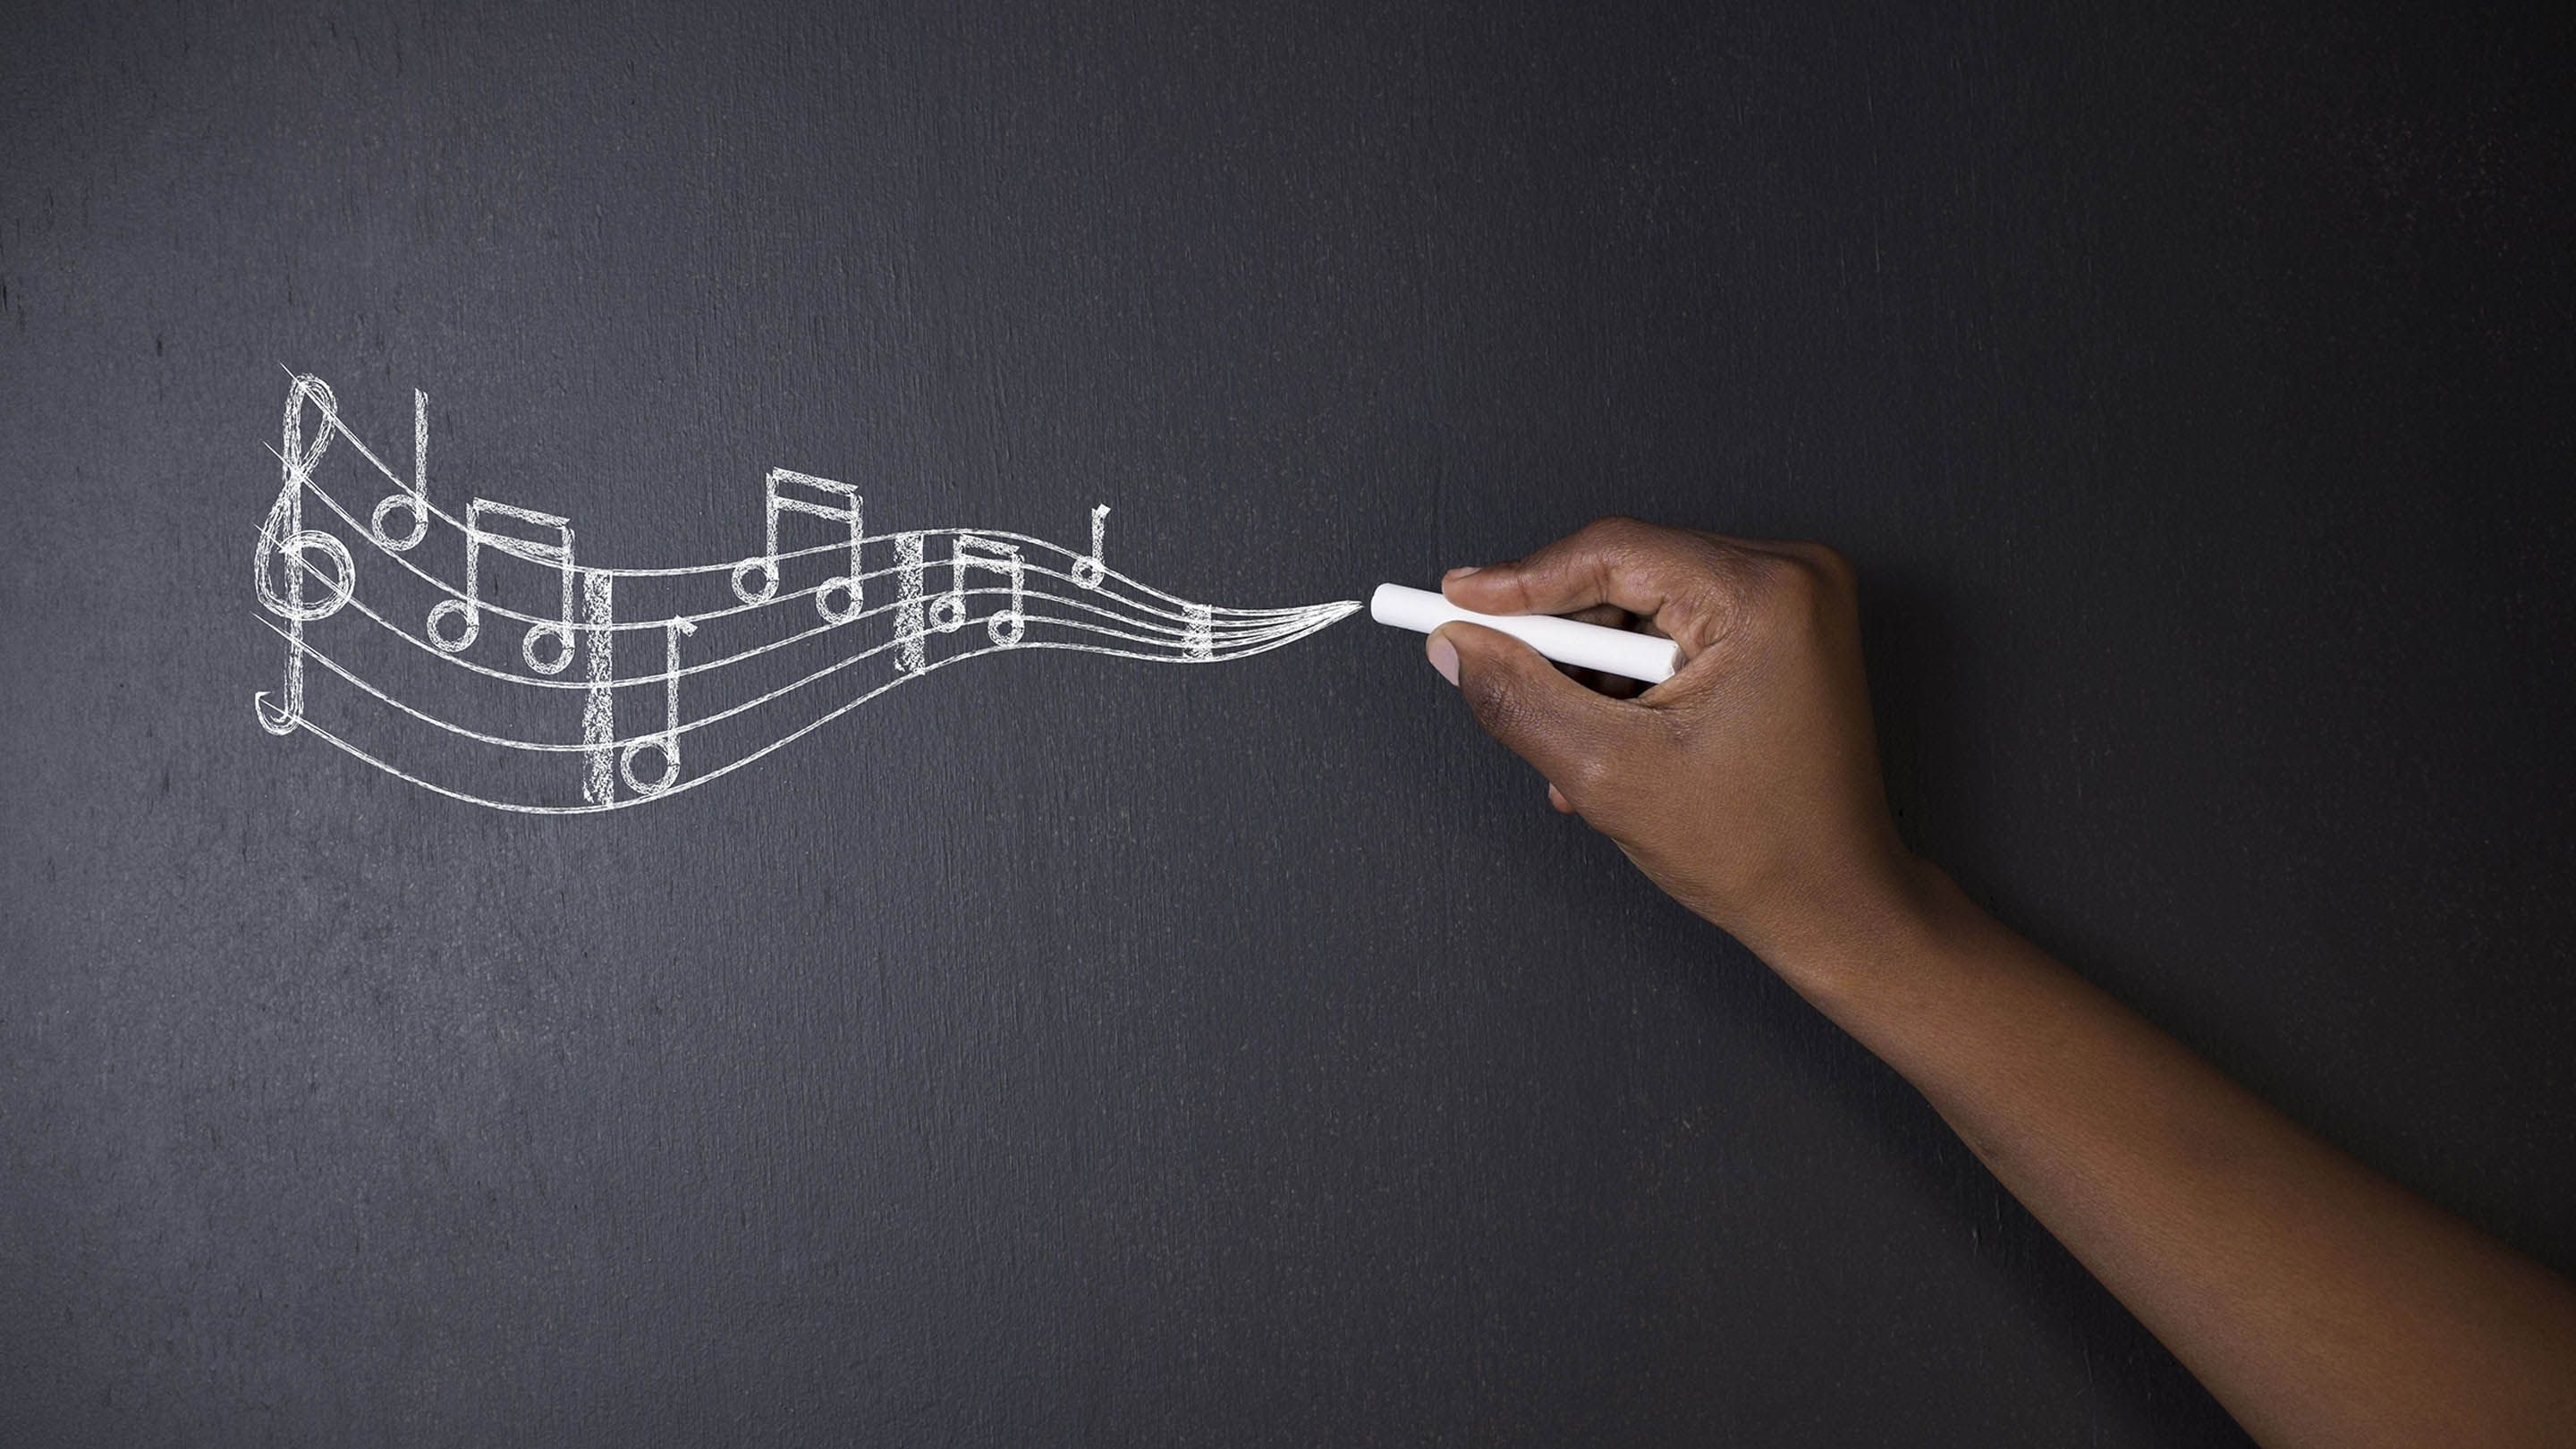 Musical notes flow across a blackboard from a piece of chalk held by a student.